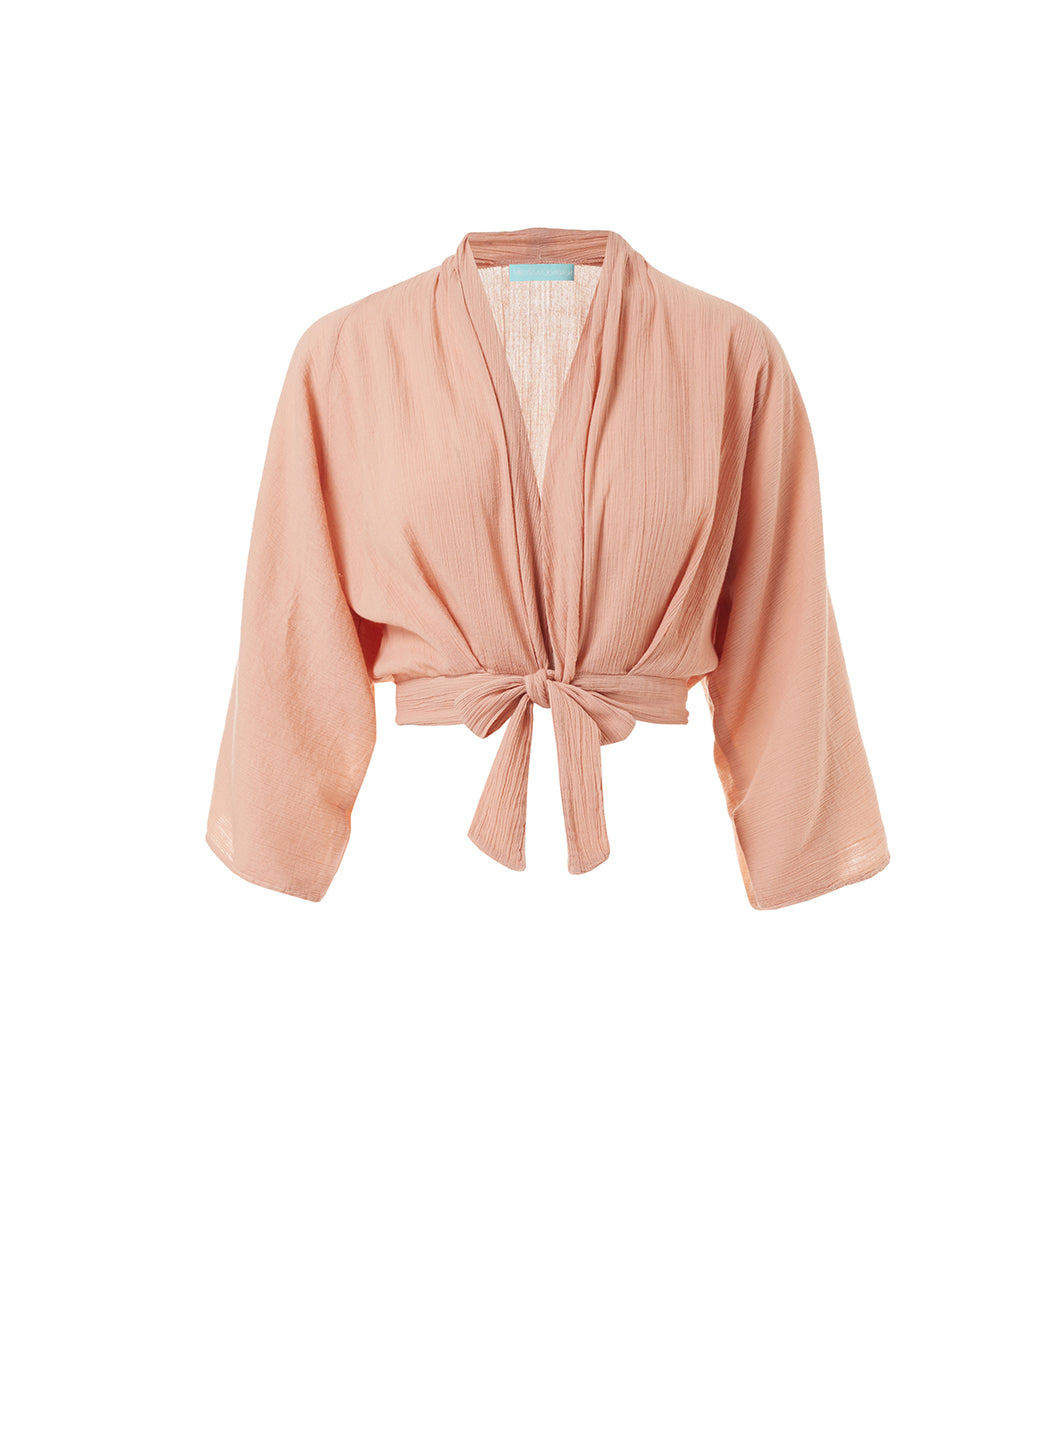 Mila Tan Tie-Front Cropped Blouse